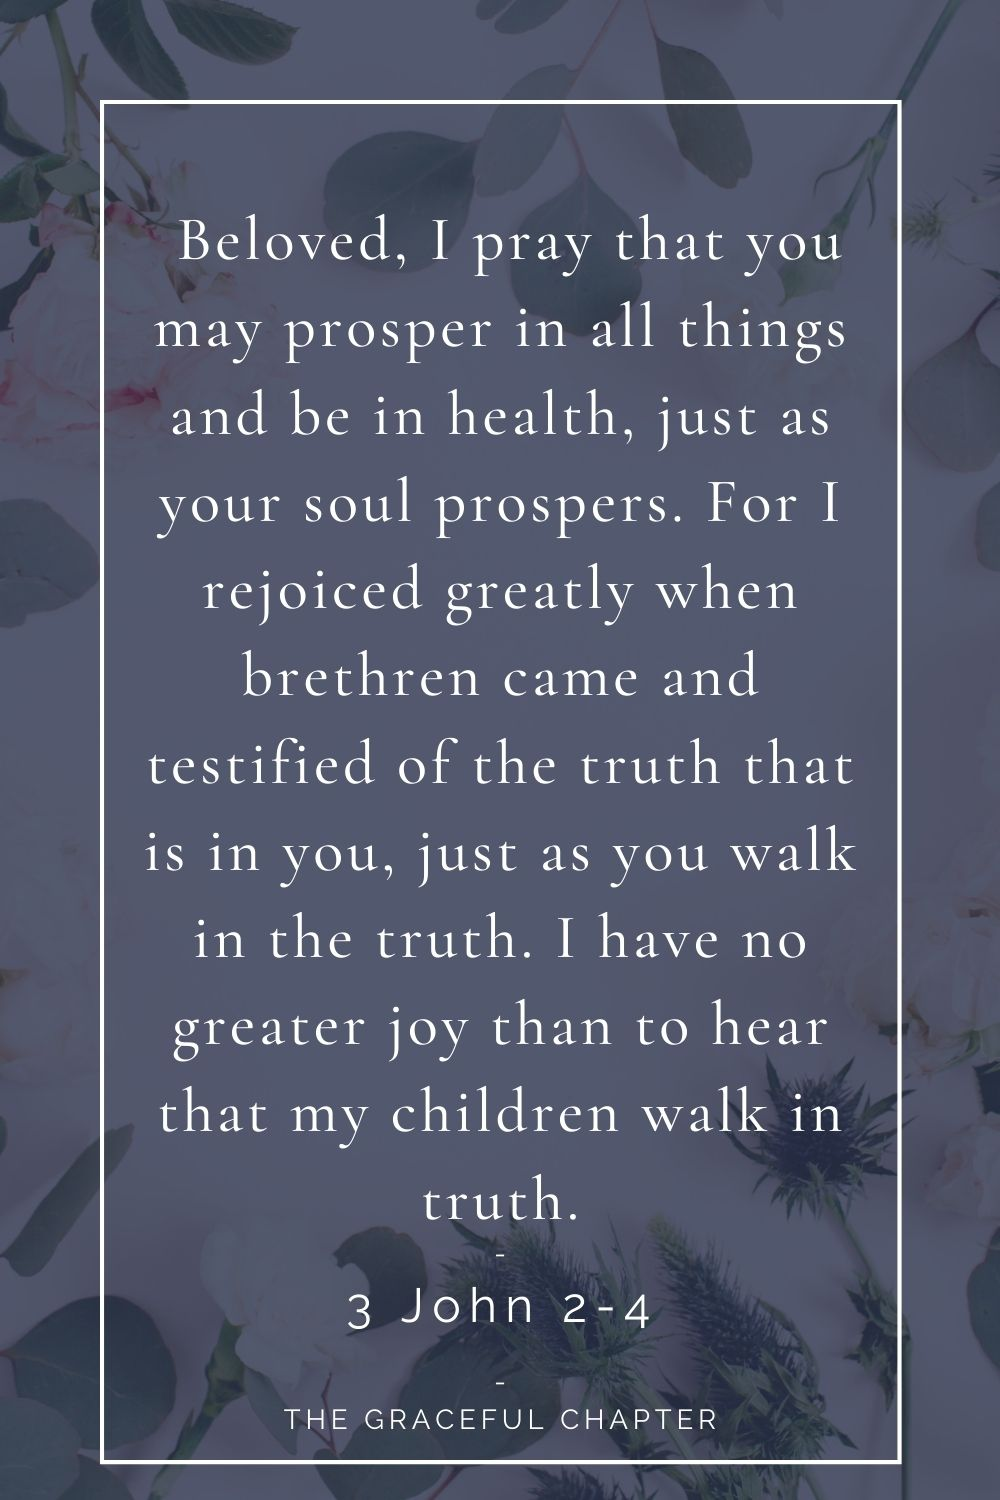 Beloved, I pray that you may prosper in all things and be in health, just as your soul prospers. For I rejoiced greatly when brethren came and testified of the truth that is in you, just as you walk in the truth. I have no greater joy than to hear that my children walk in truth. 3 John 2-4